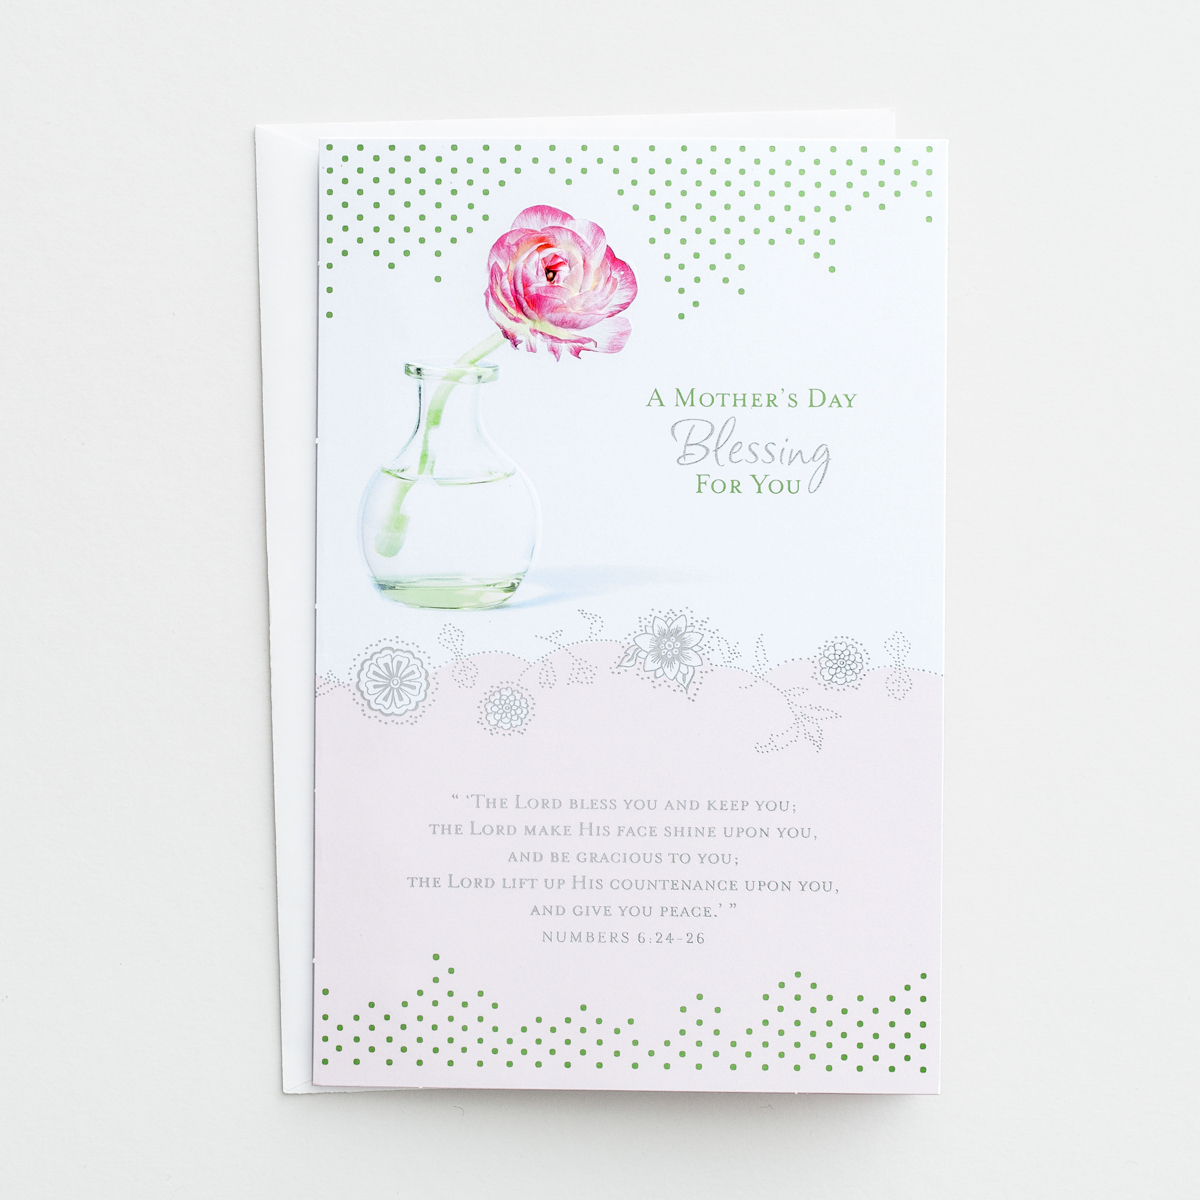 Mother's Day- A Mother's Day Blessing-3 Premium